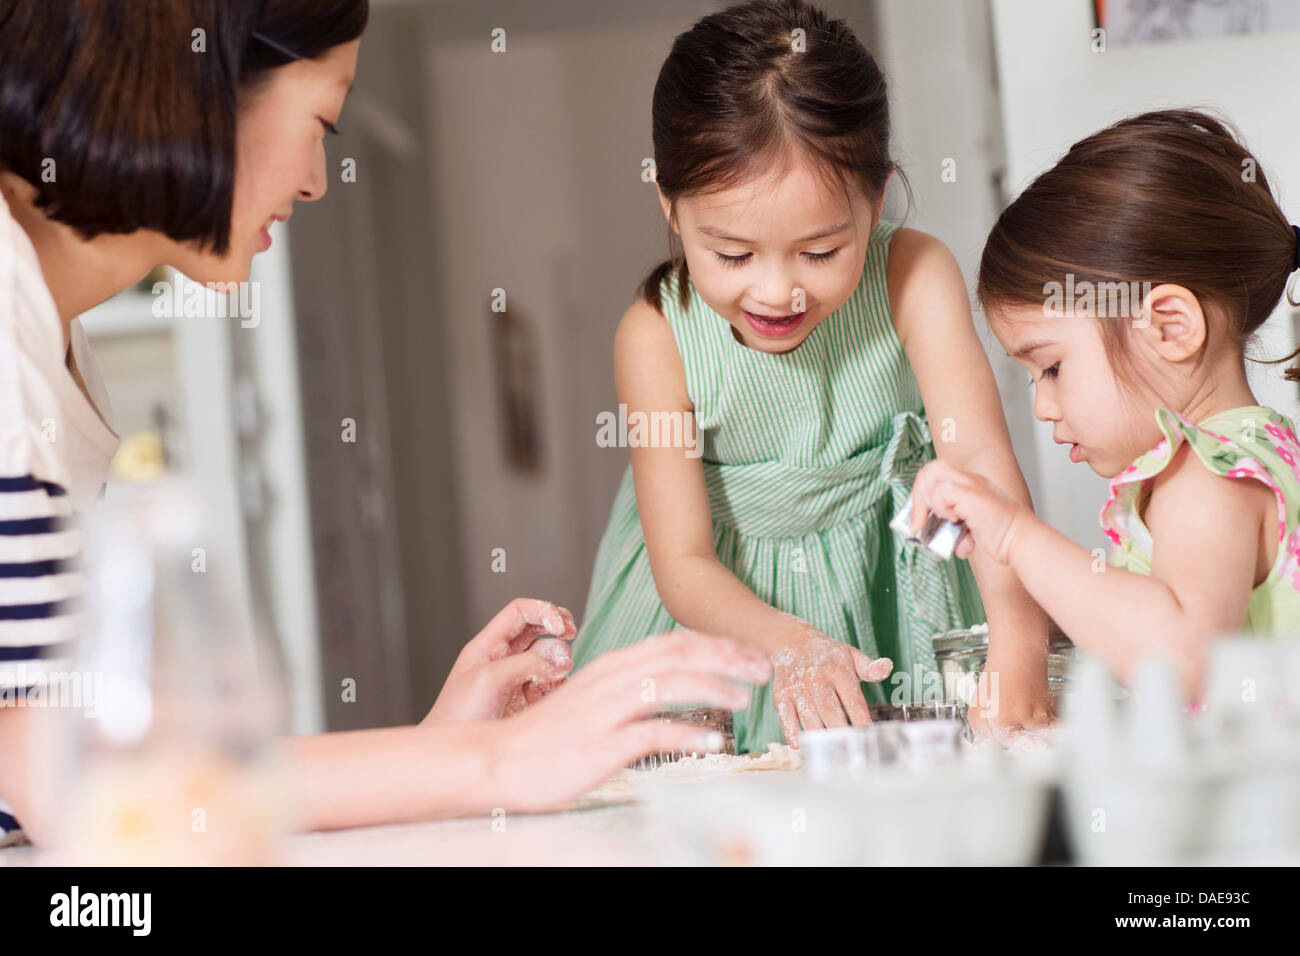 Mother and young daughters making pastry - Stock Image